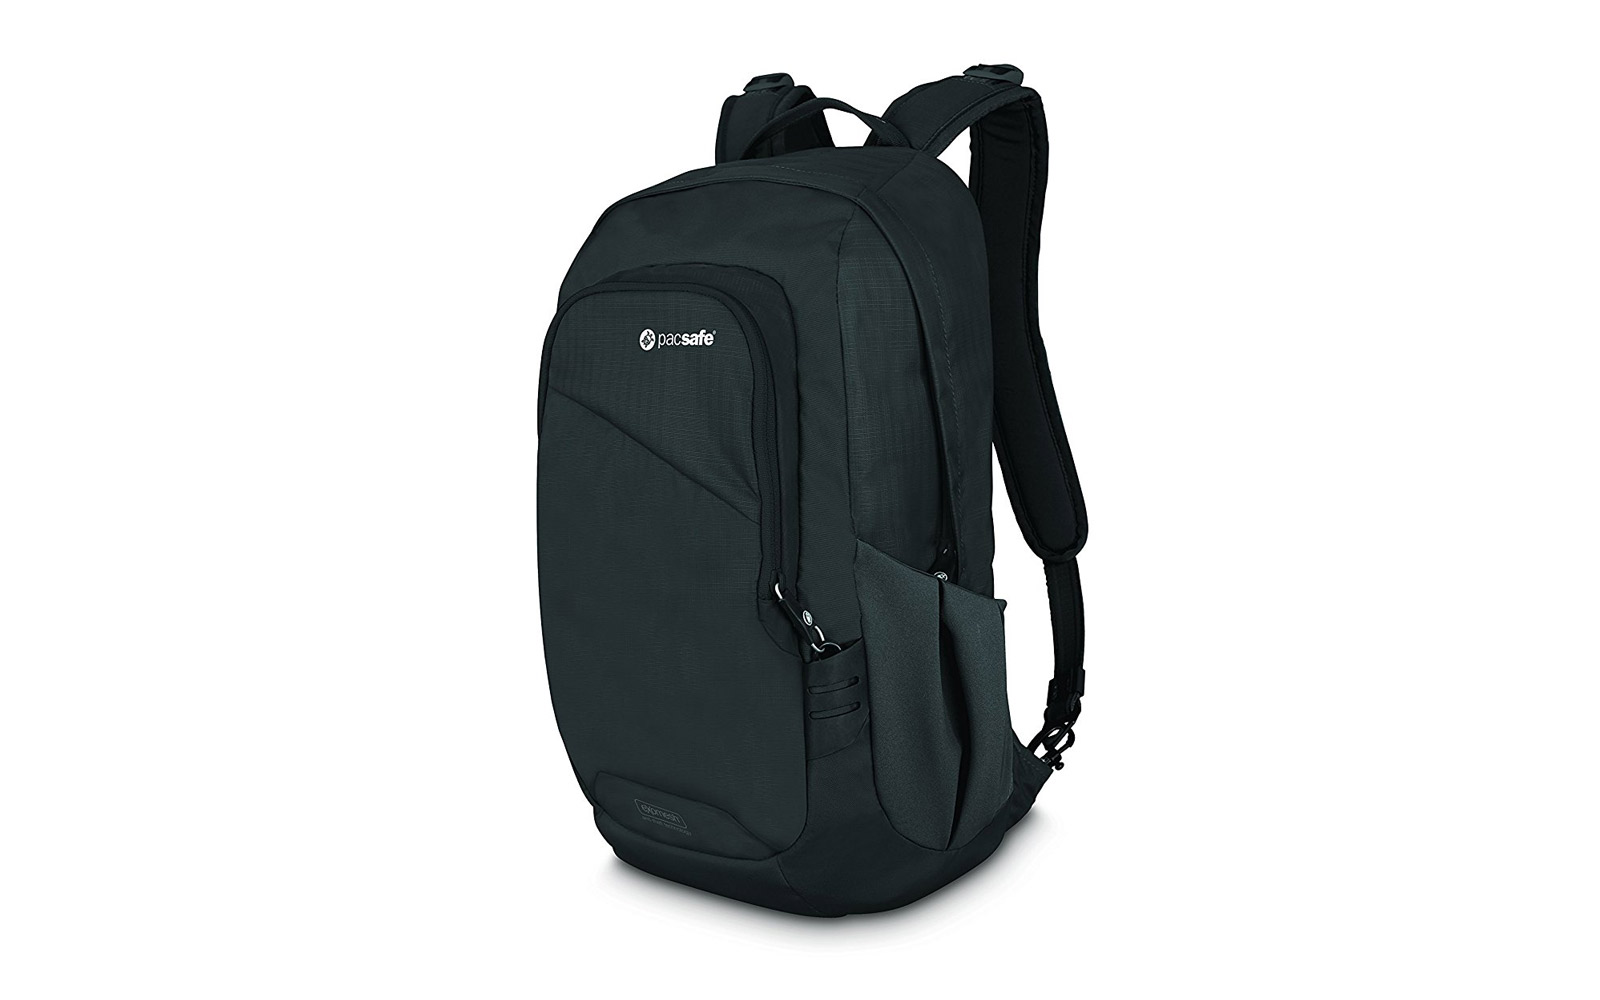 cb7caf3448a The Best Laptop Backpacks for Travel